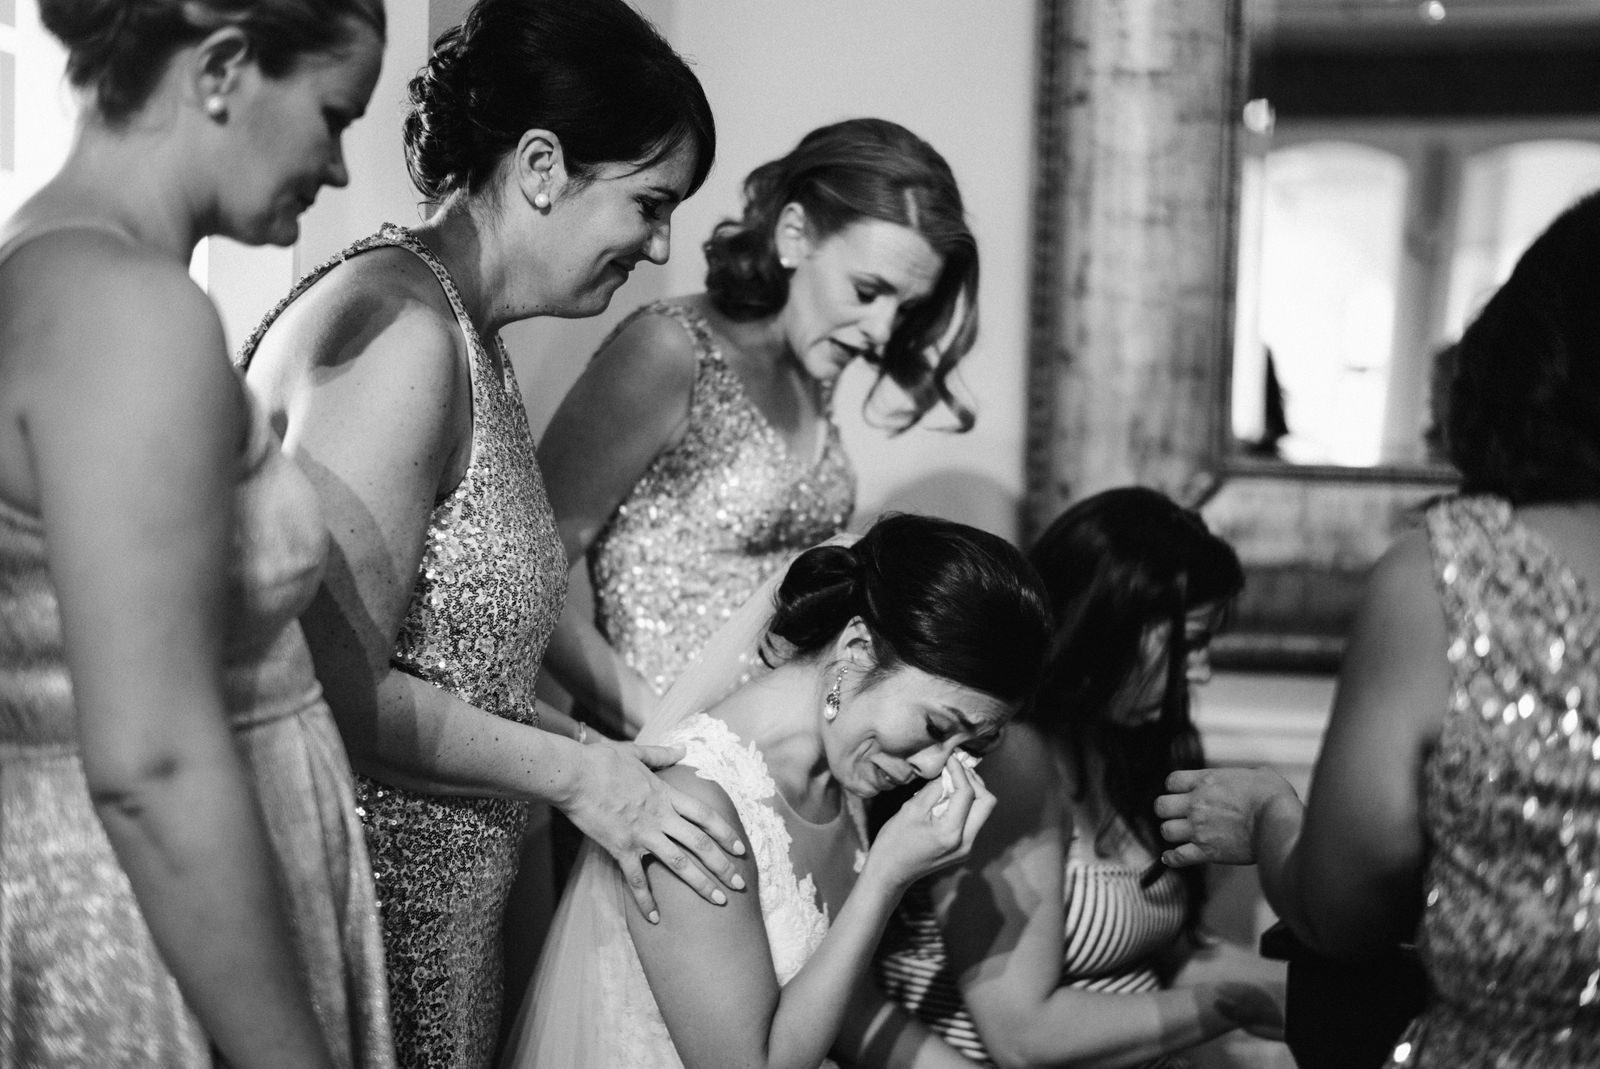 077-tearful-bride-praying-with-bridesmaids-on-leica-m240-by-washington-documentary-photographer-ryan-flynn.jpg